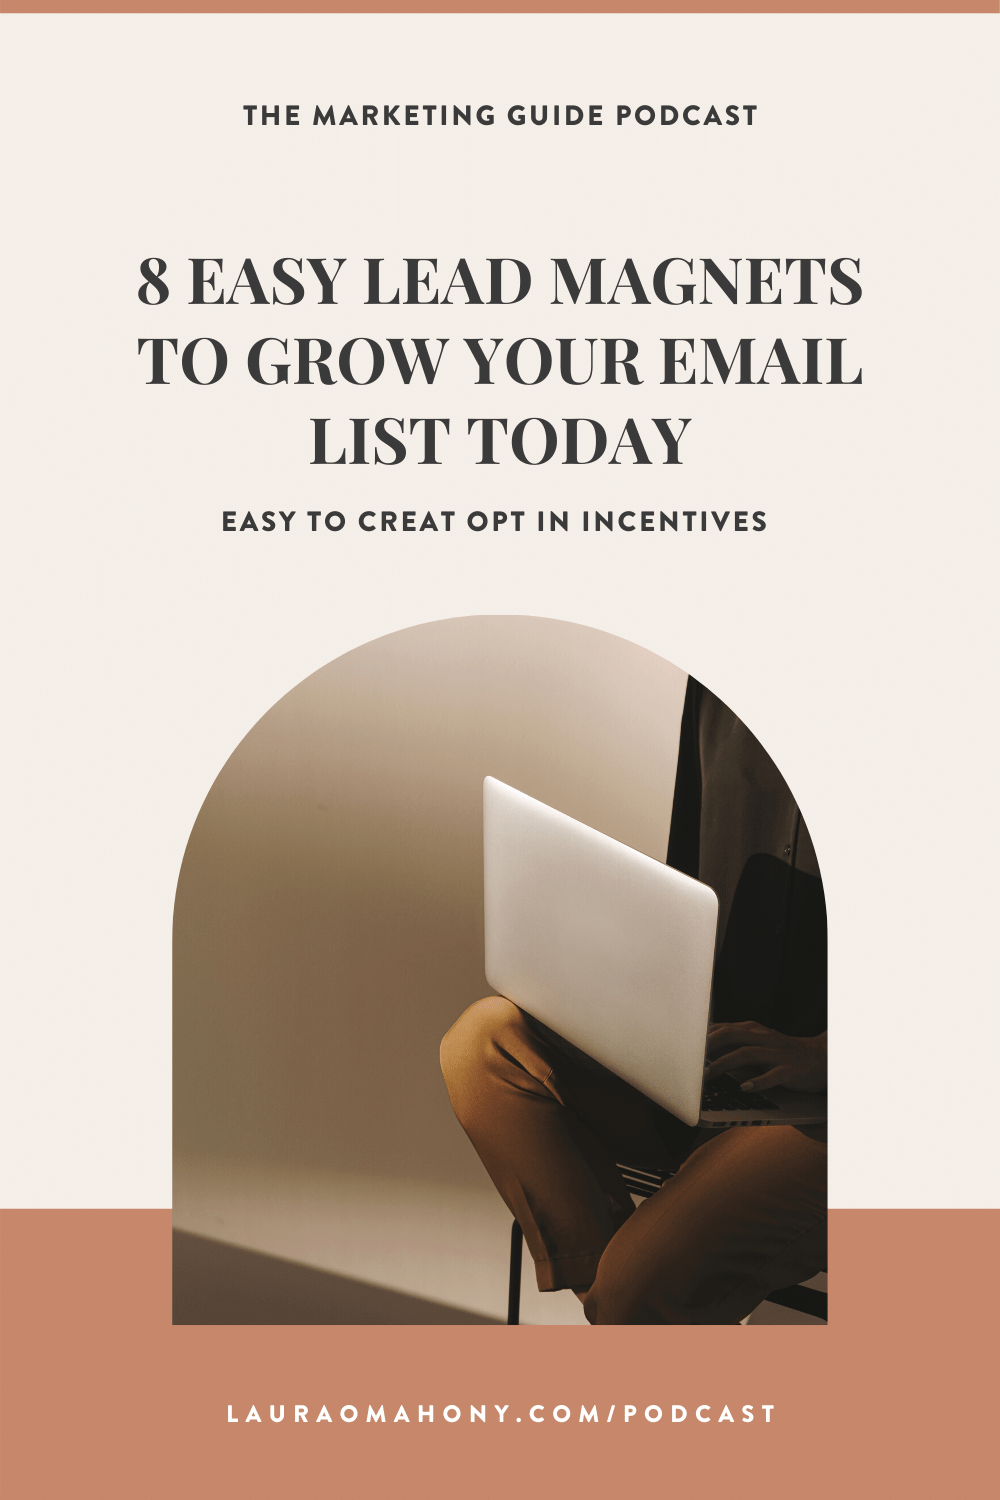 The Marketing Guide Podcast with Laura O' Mahony Episode 51 8 Easy Lead Magnets to grow your email list today